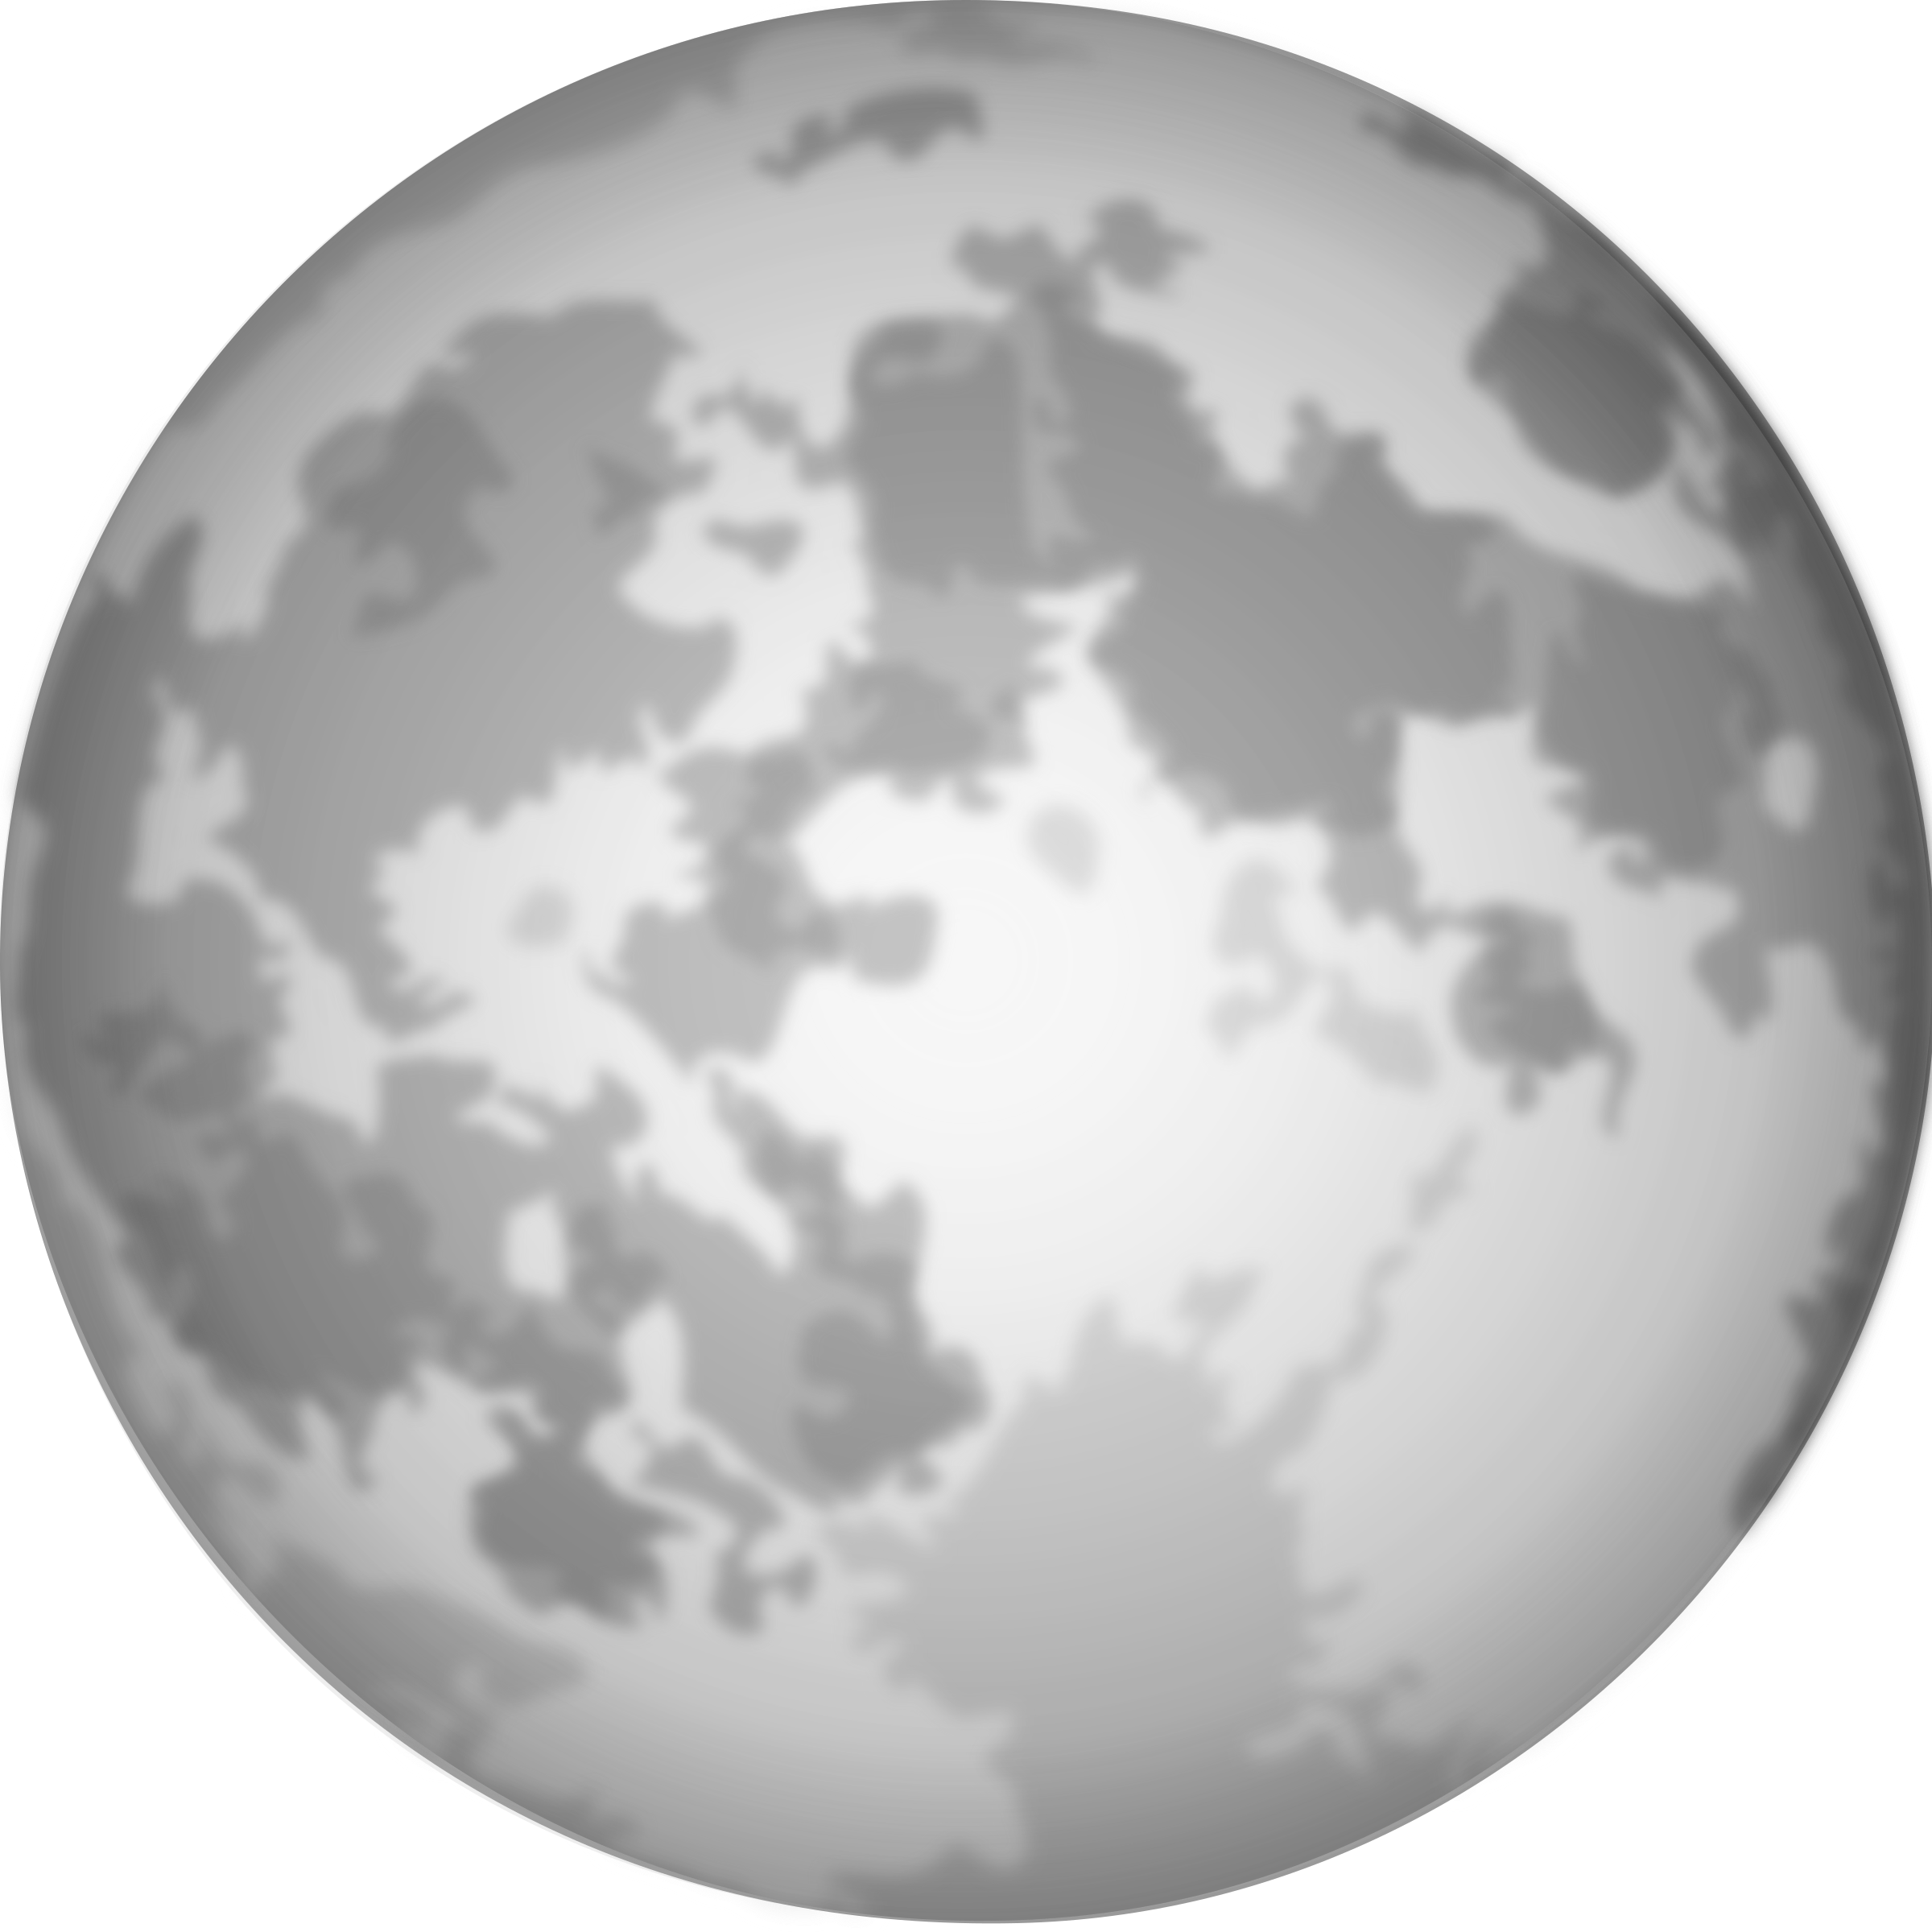 Moon Transparent Clipart Halloween Bright Full Moon